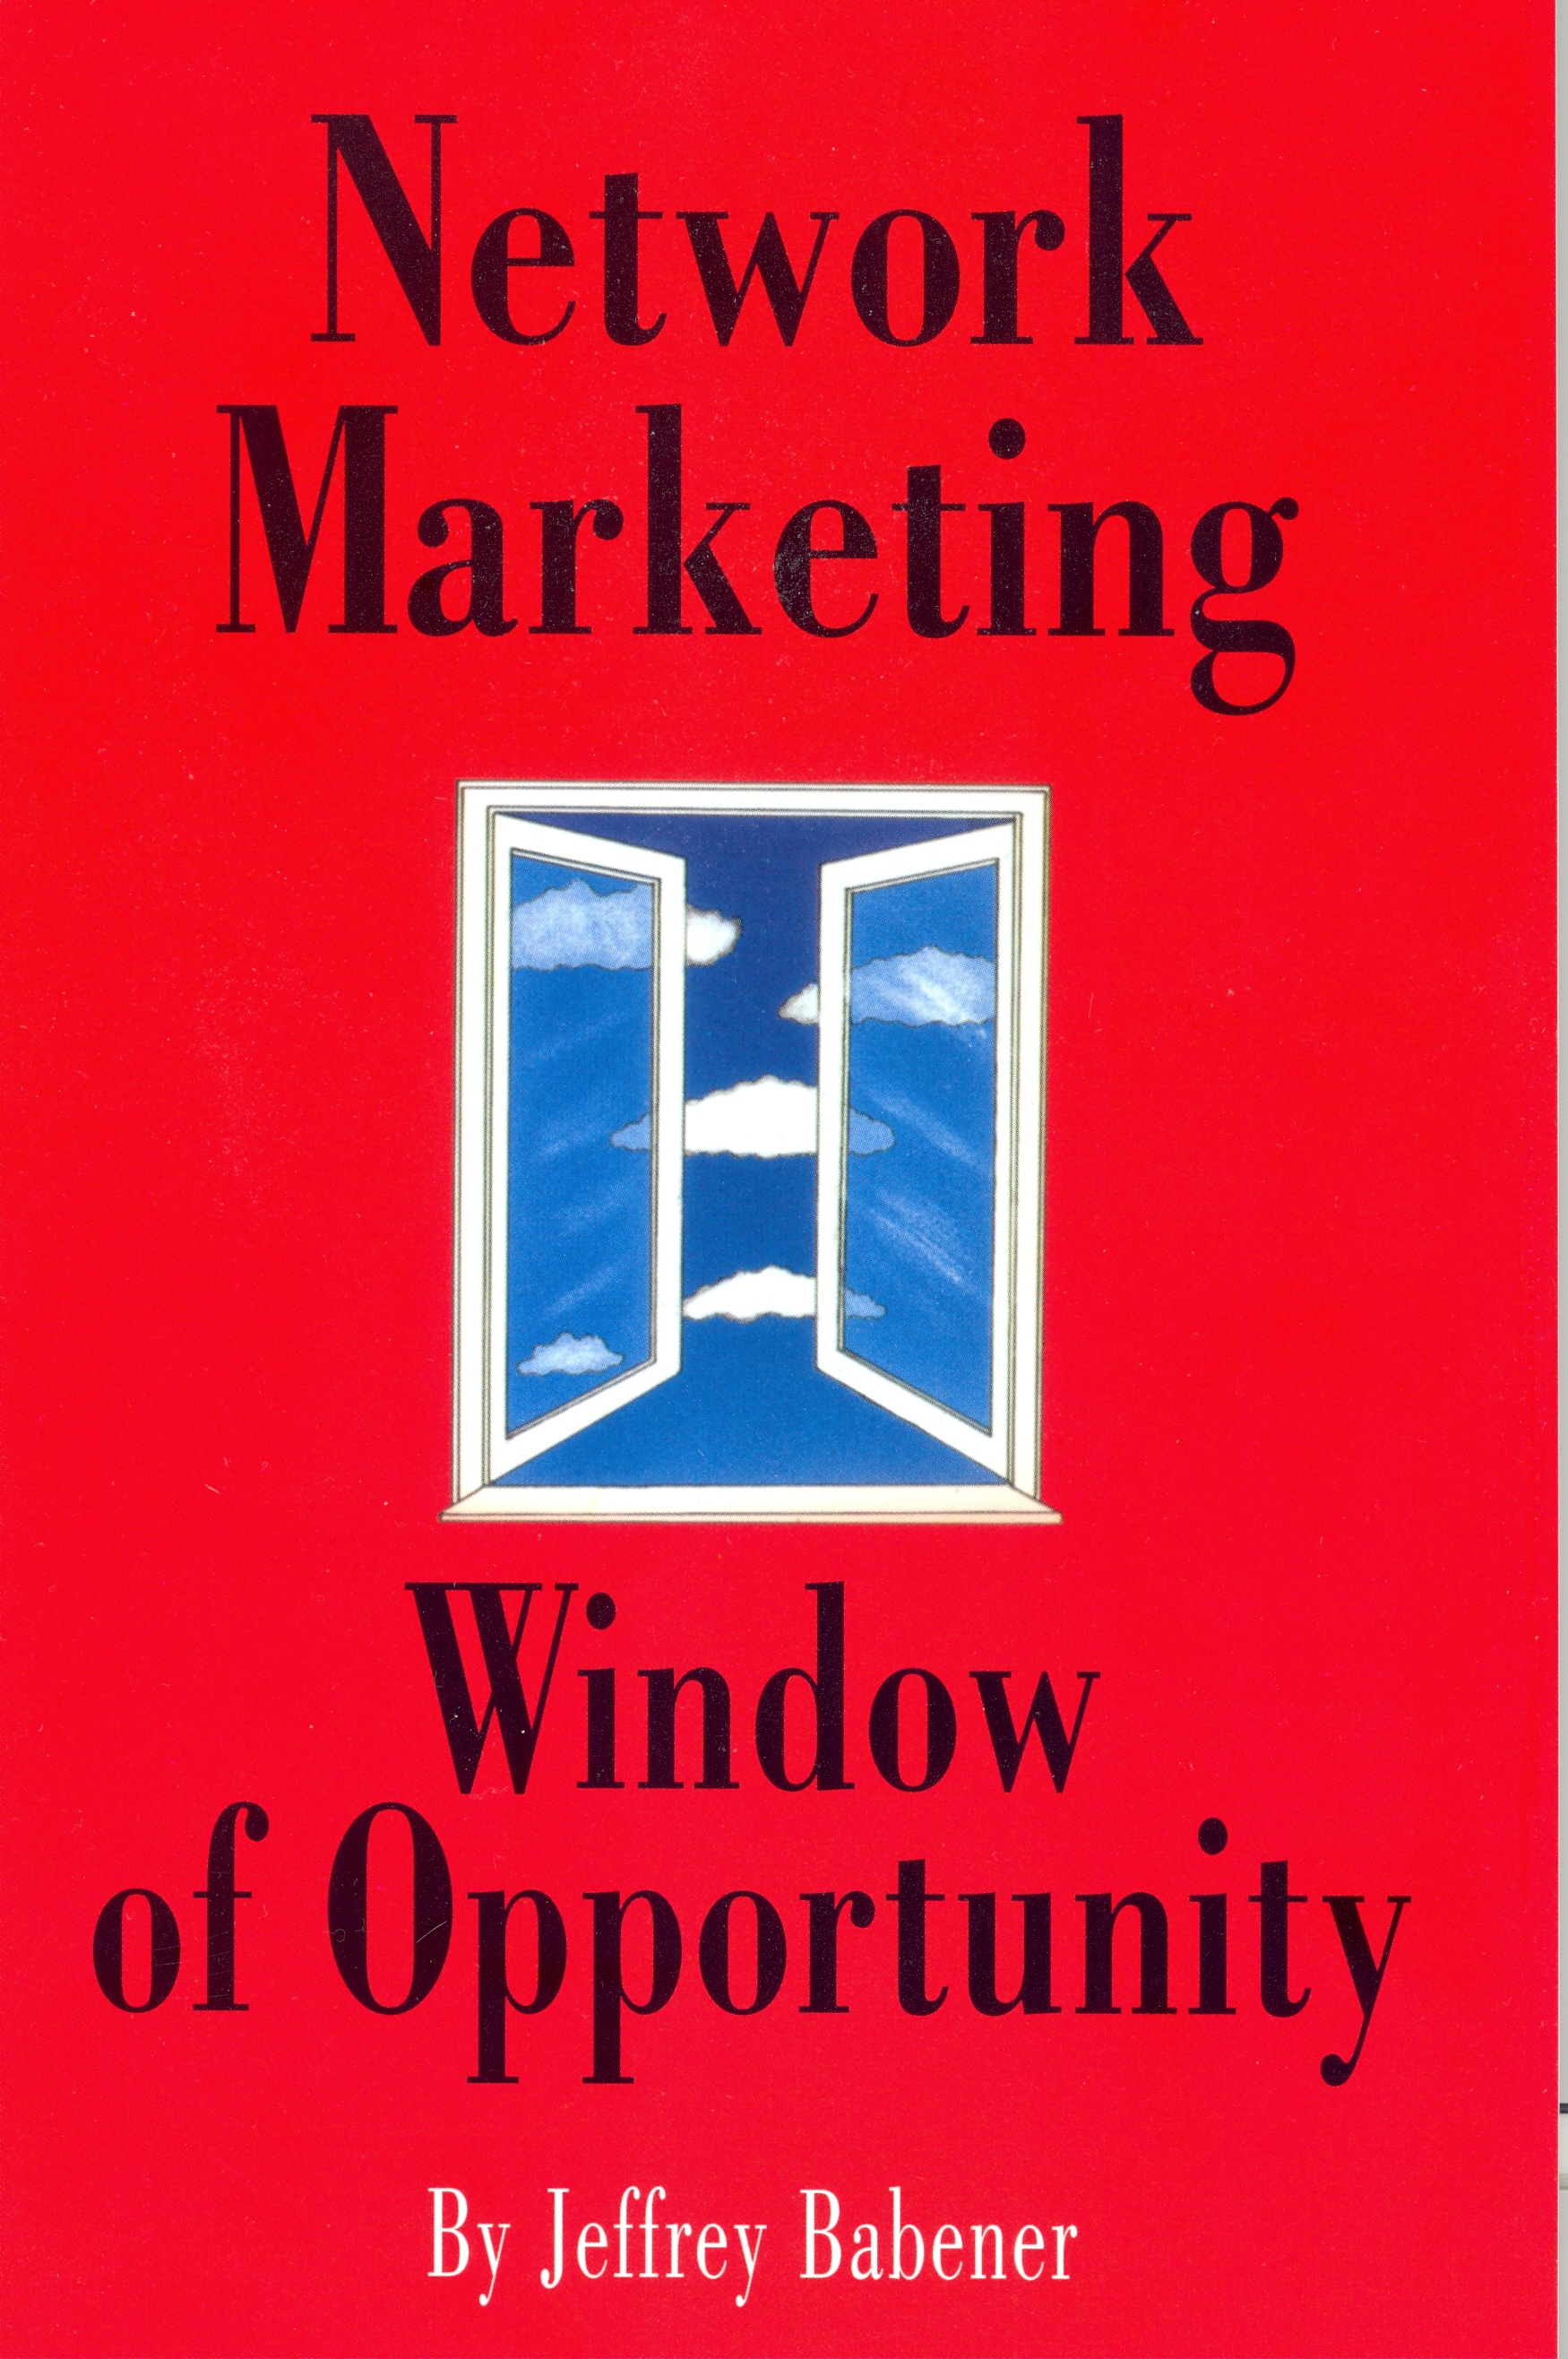 Network Marketing: Window of Opportunity